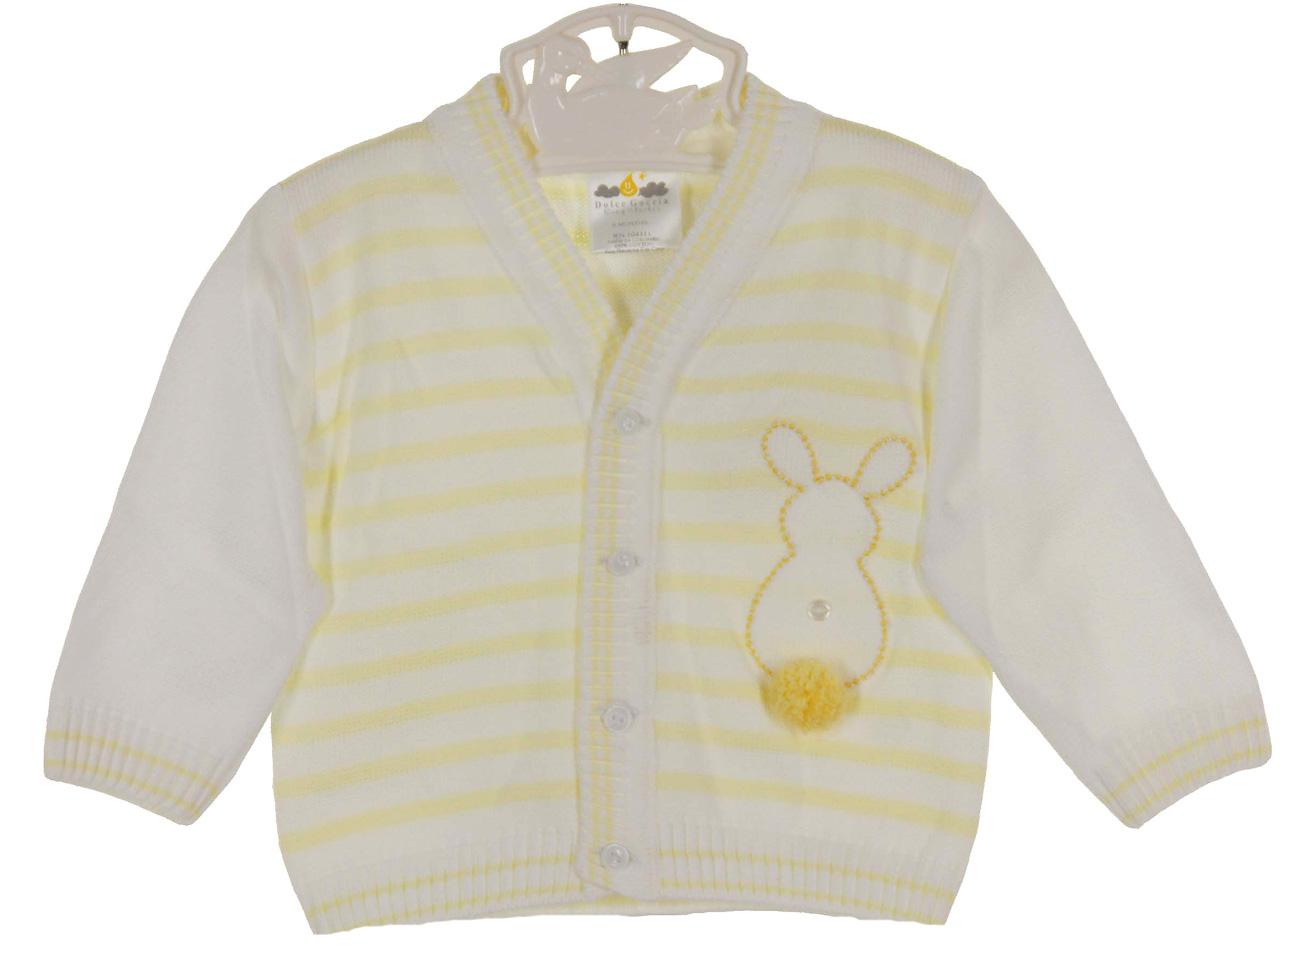 Dolce Goccia yellow striped sweater with bunny embroidery,yellow ...